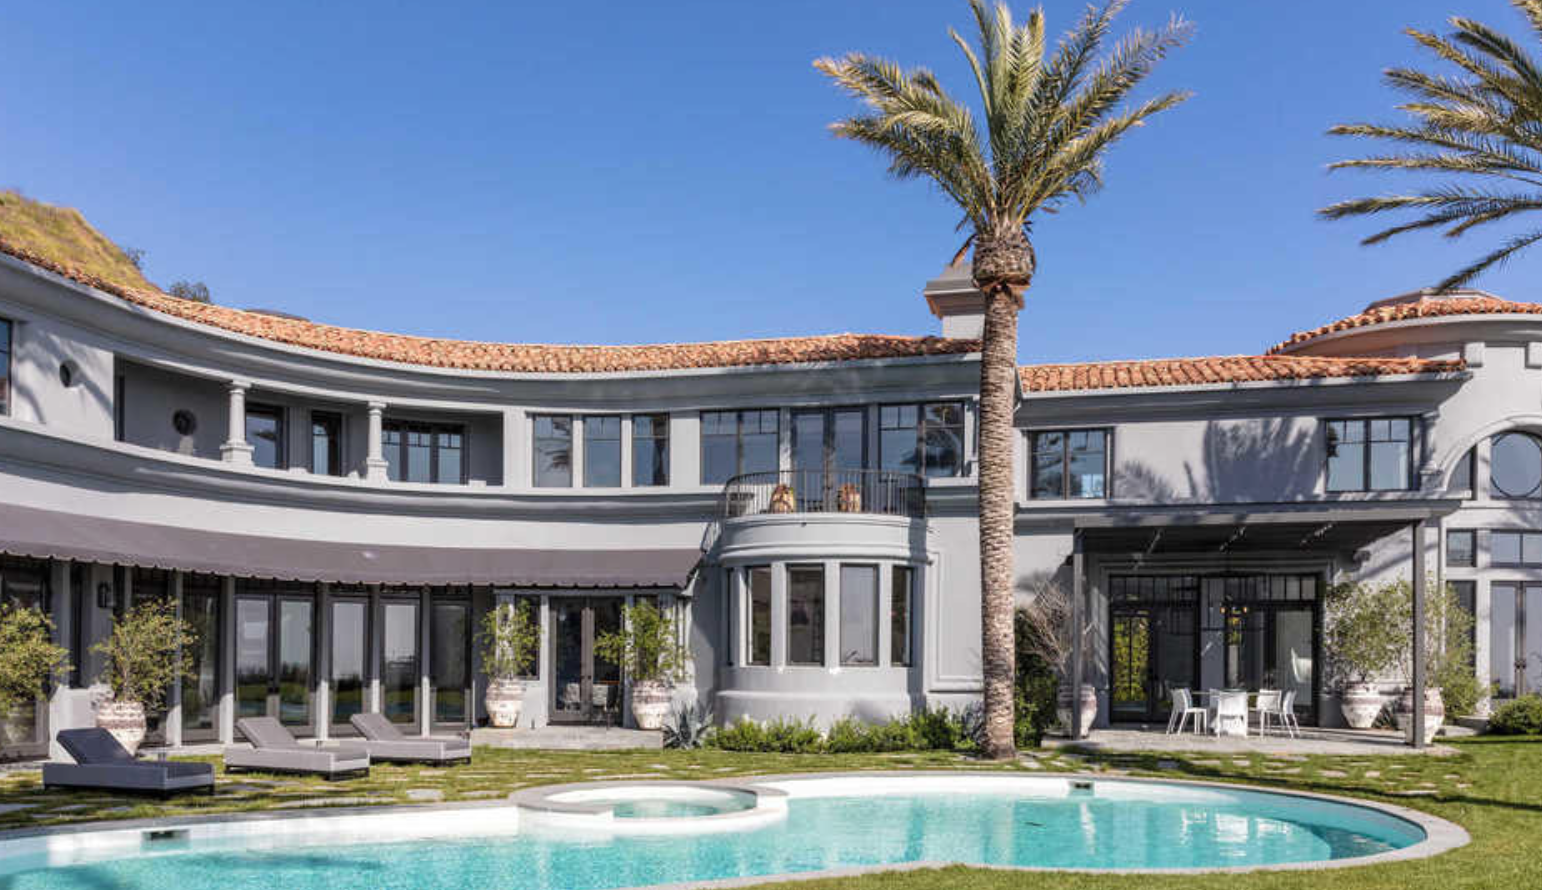 Kylie Jenner S Beverly Hills Home Is 35 Million Kylie Jenner House